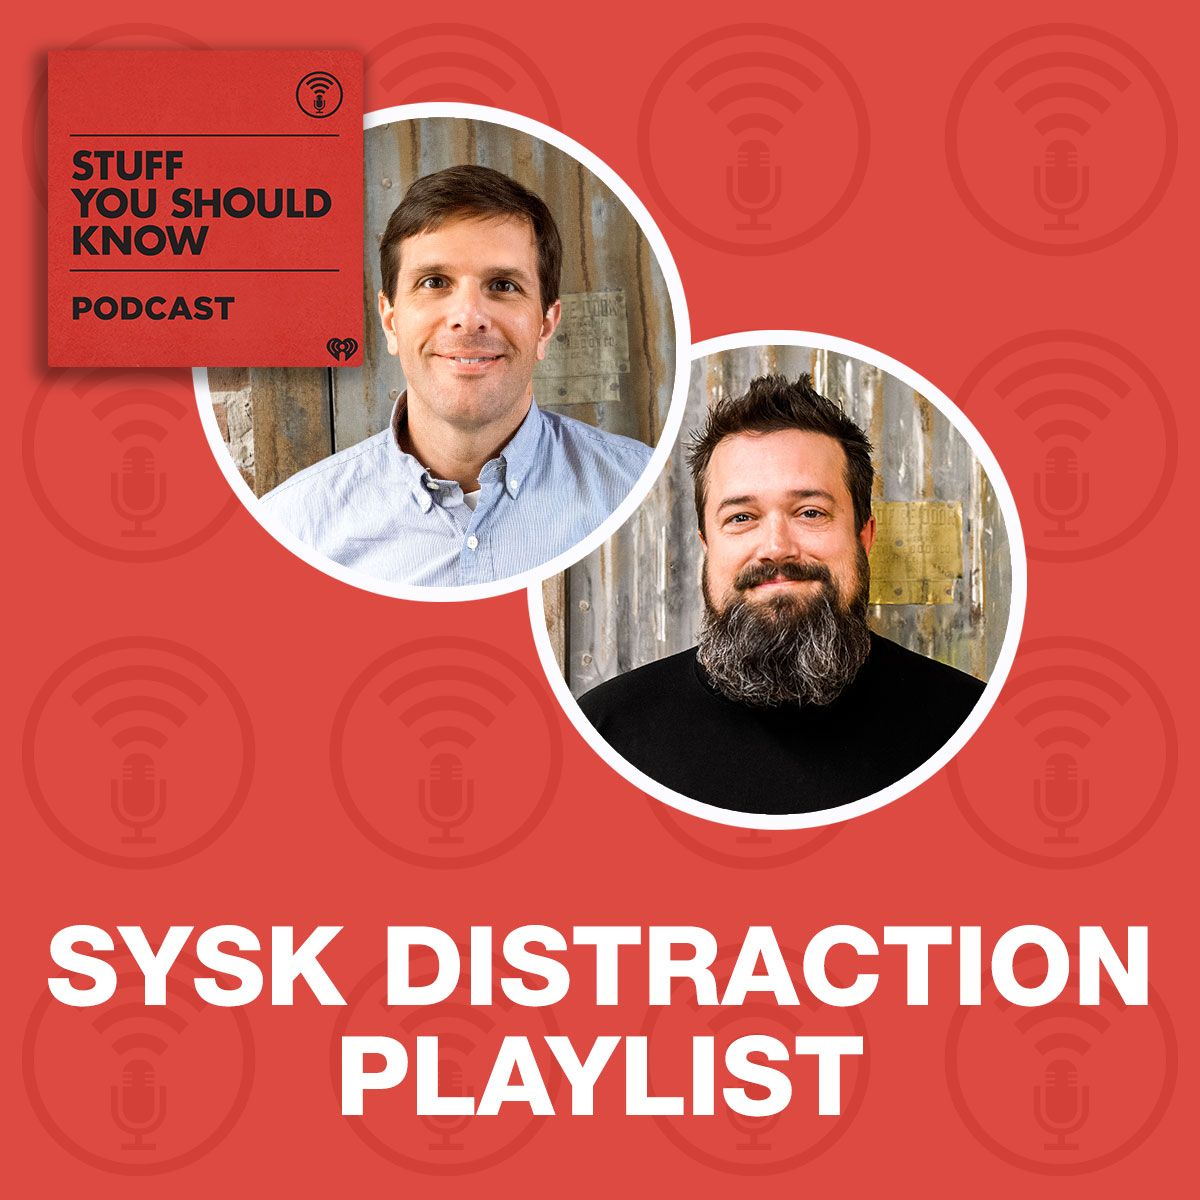 SYSK Distraction Playlist: How Jim Henson Worked